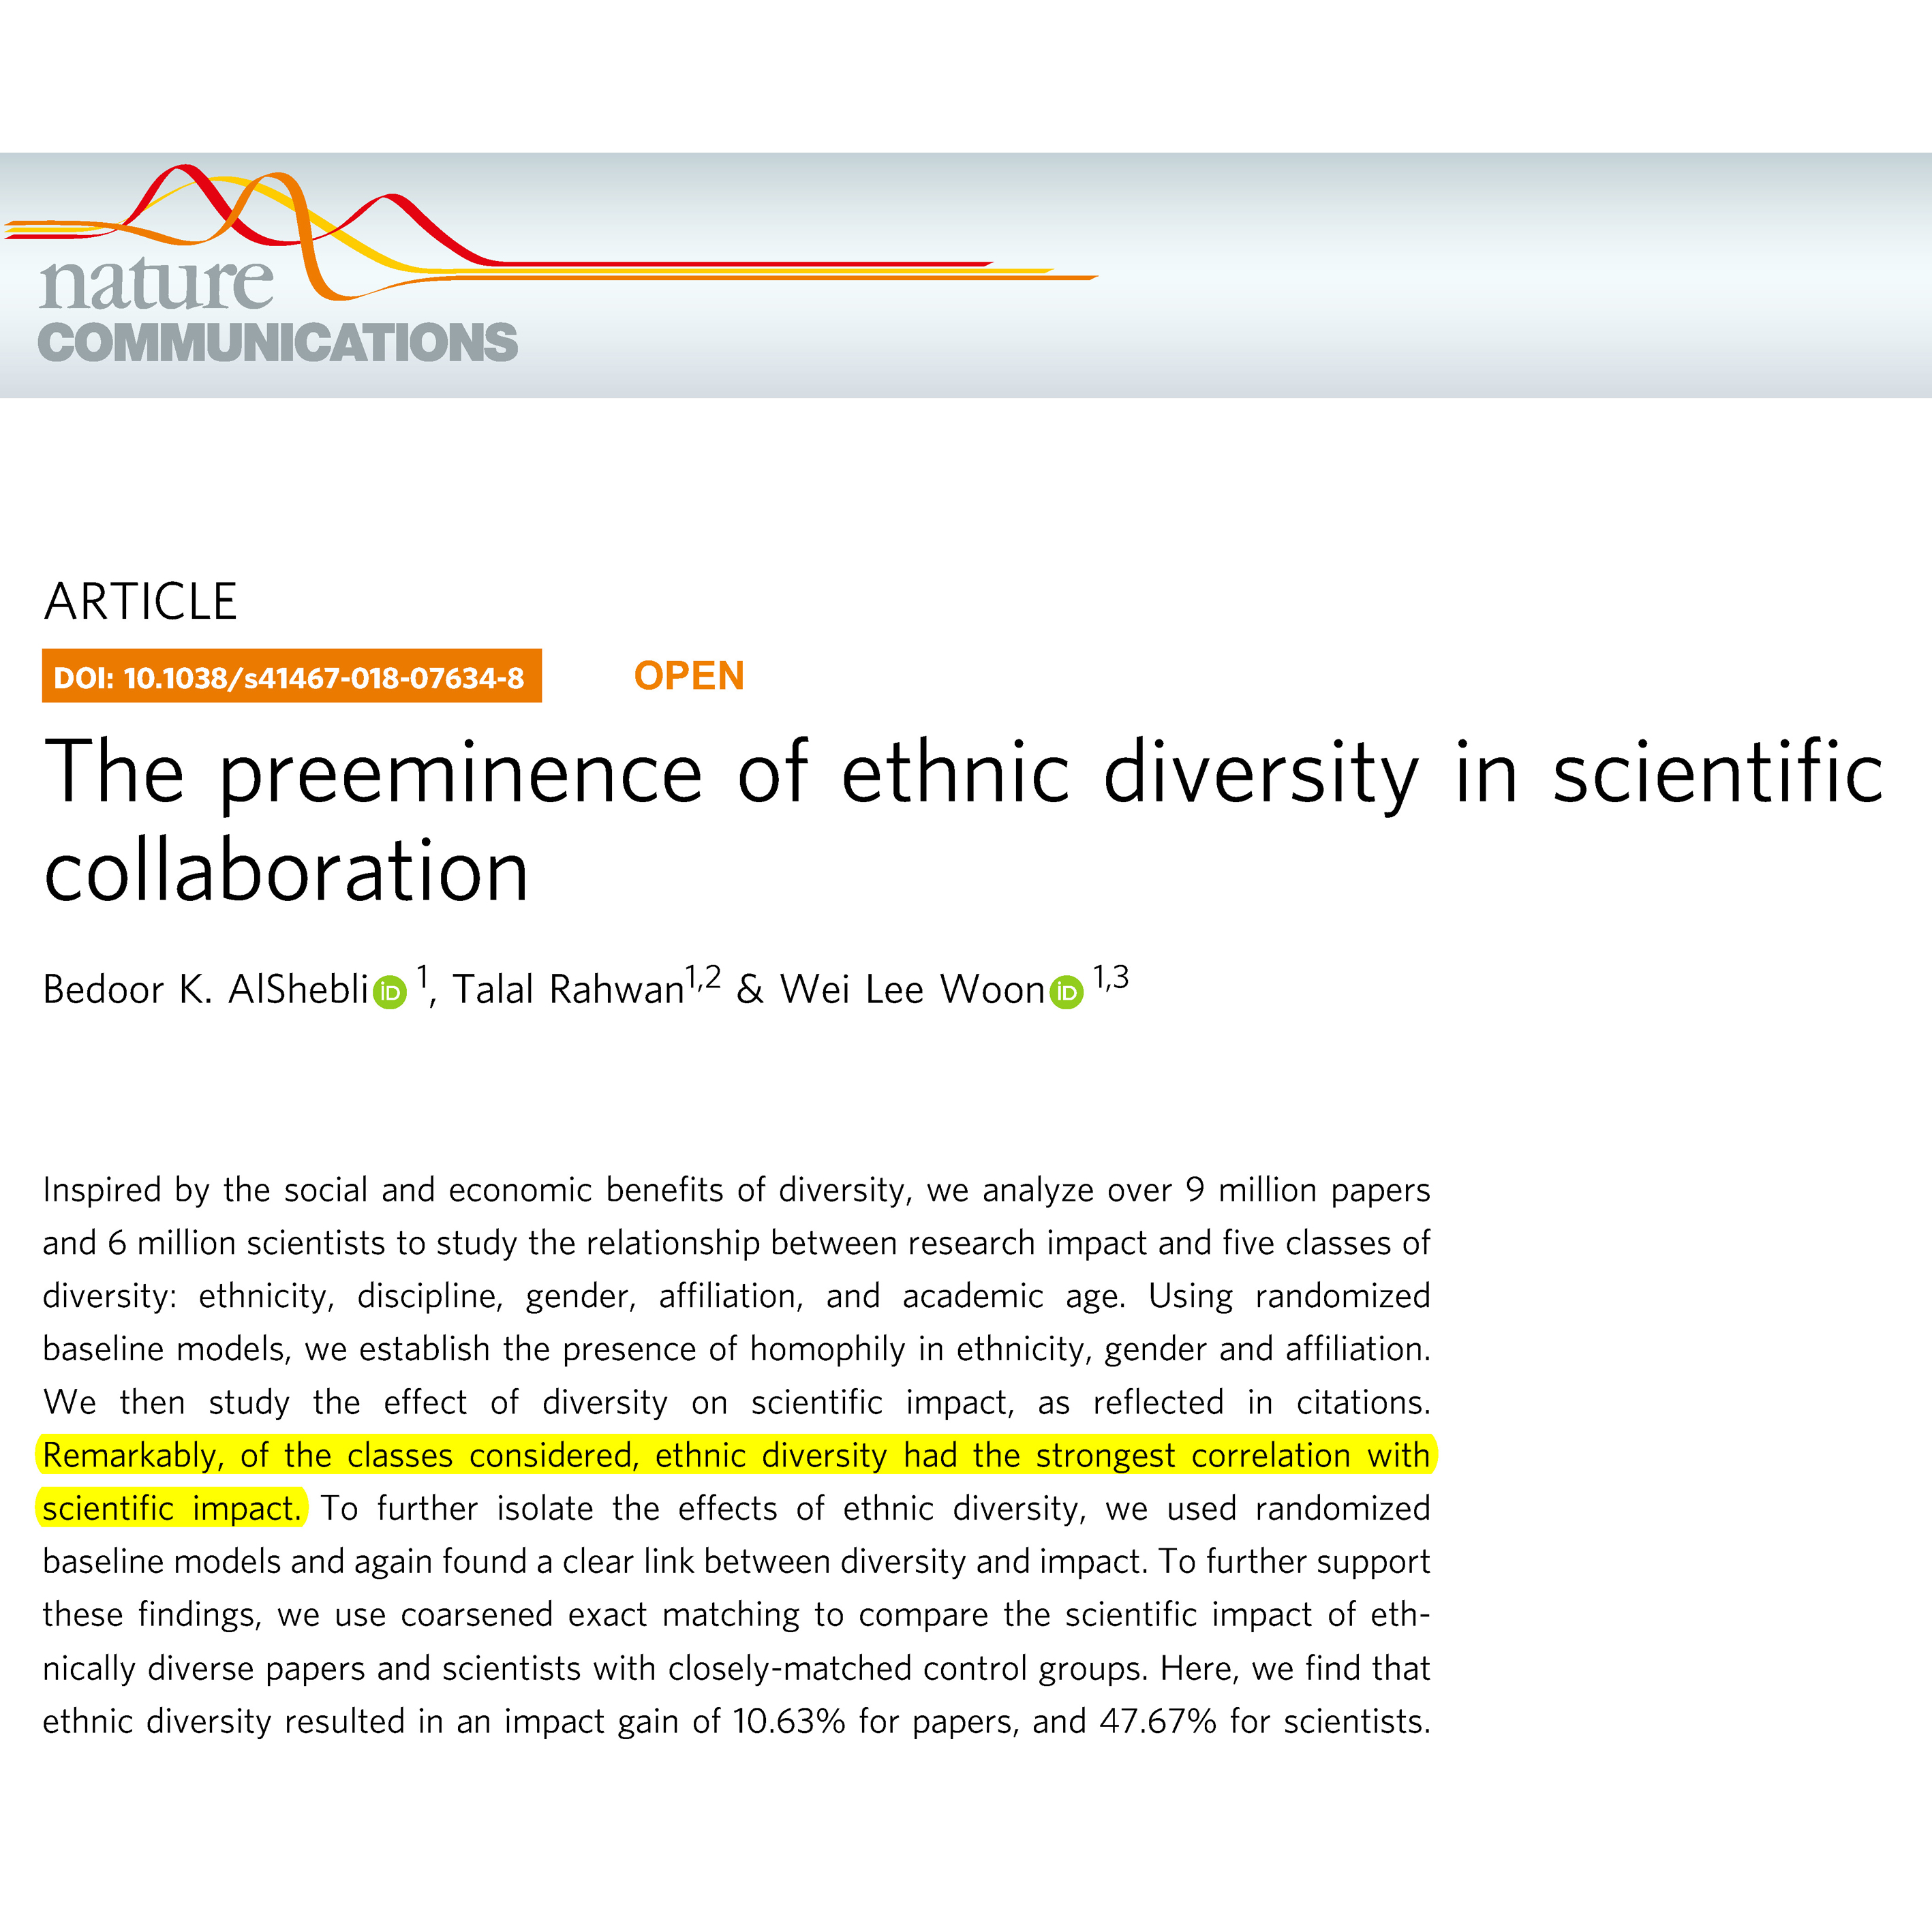 The preeminence of ethnic diversity in scientific